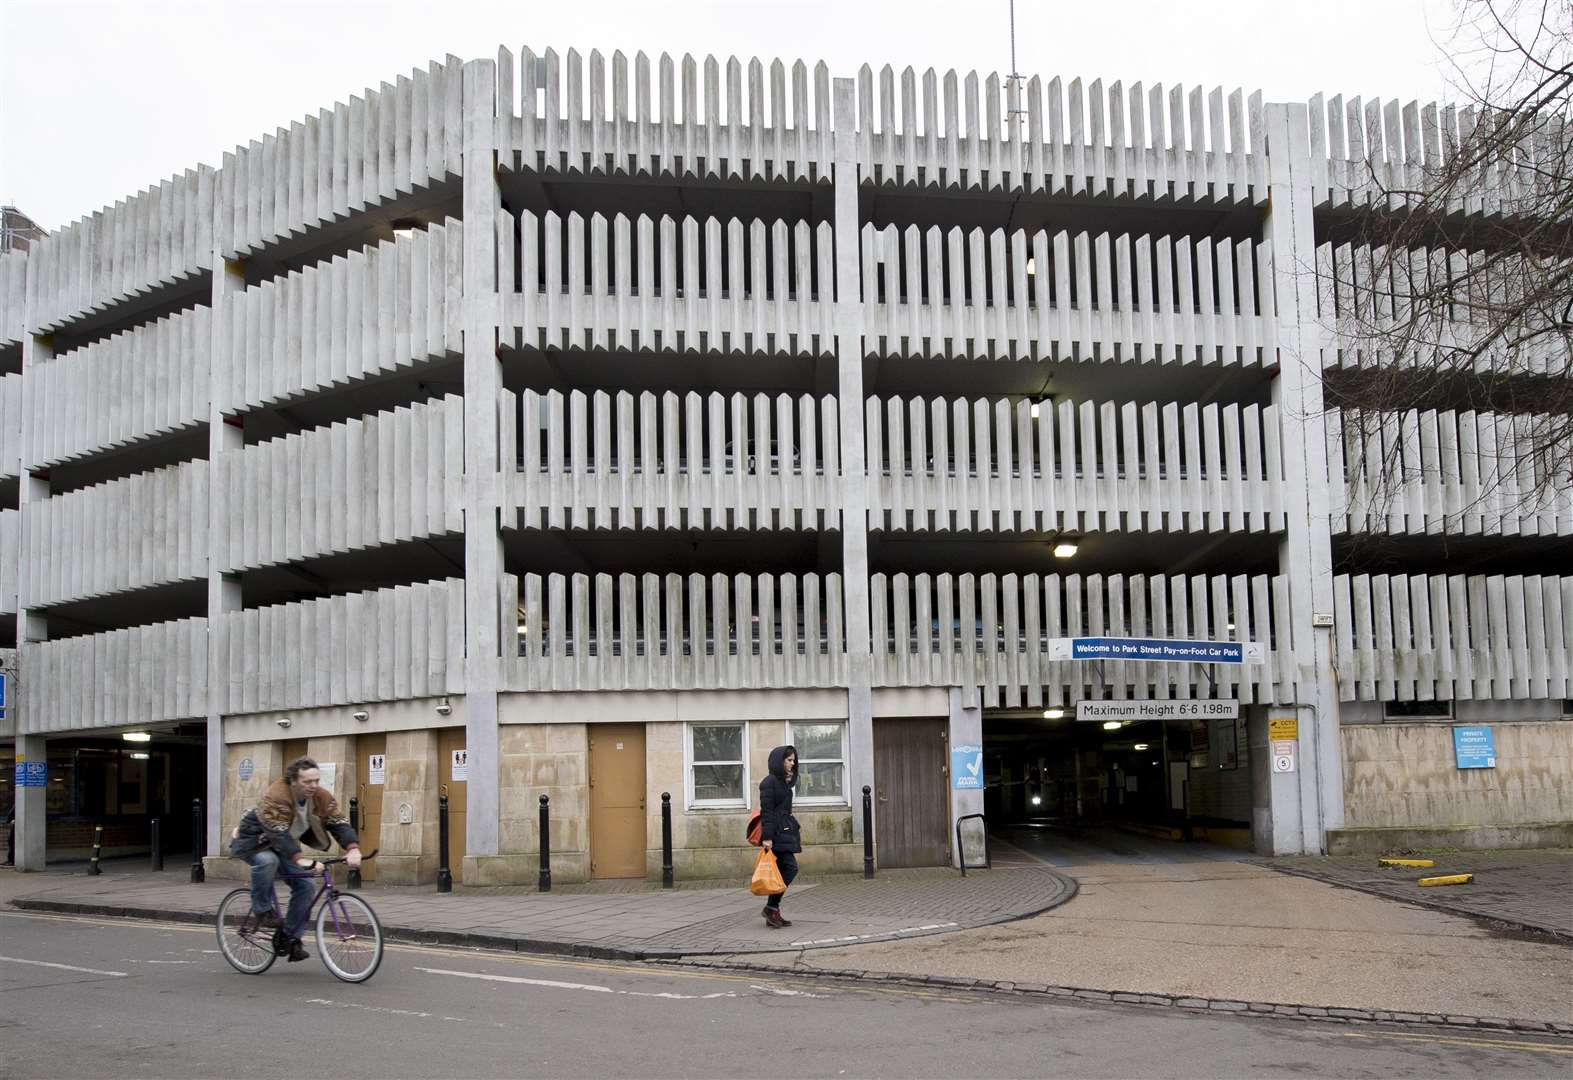 Cambridge car park warning as council reports bank cards scam